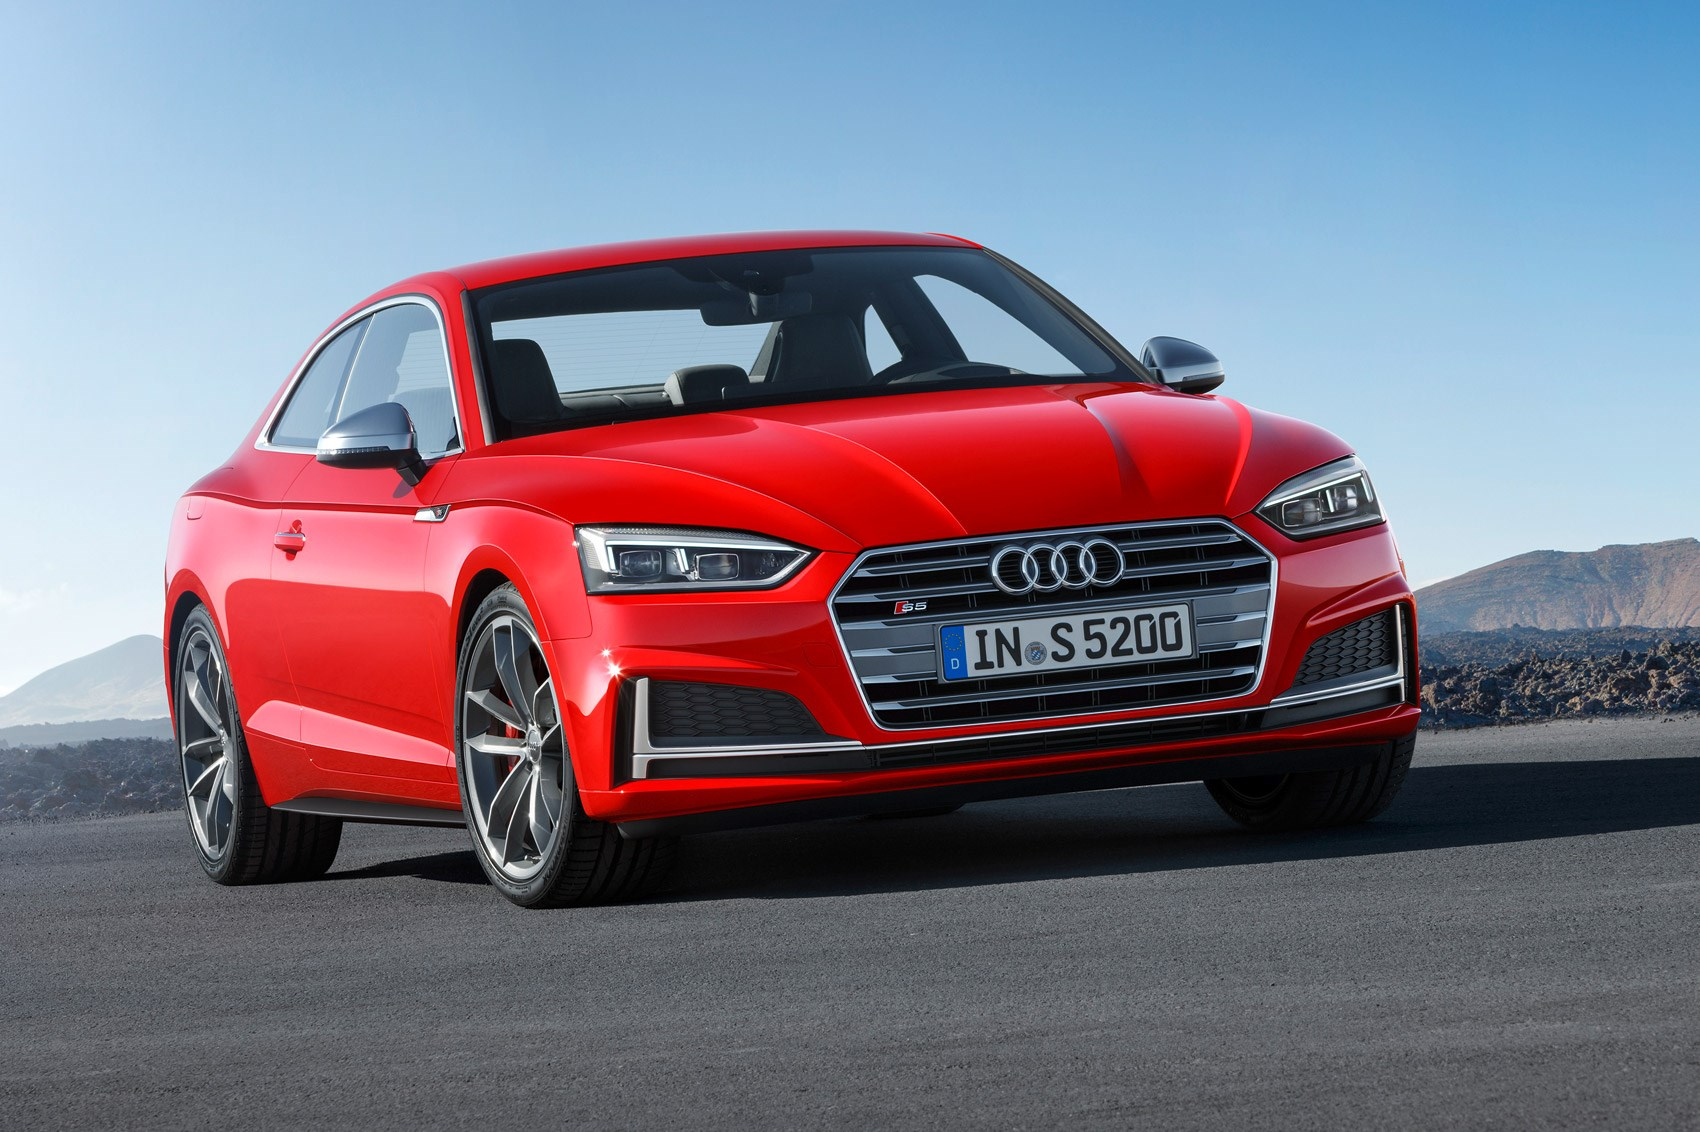 New Audi A5 and S5 revealed: more space, tech and power